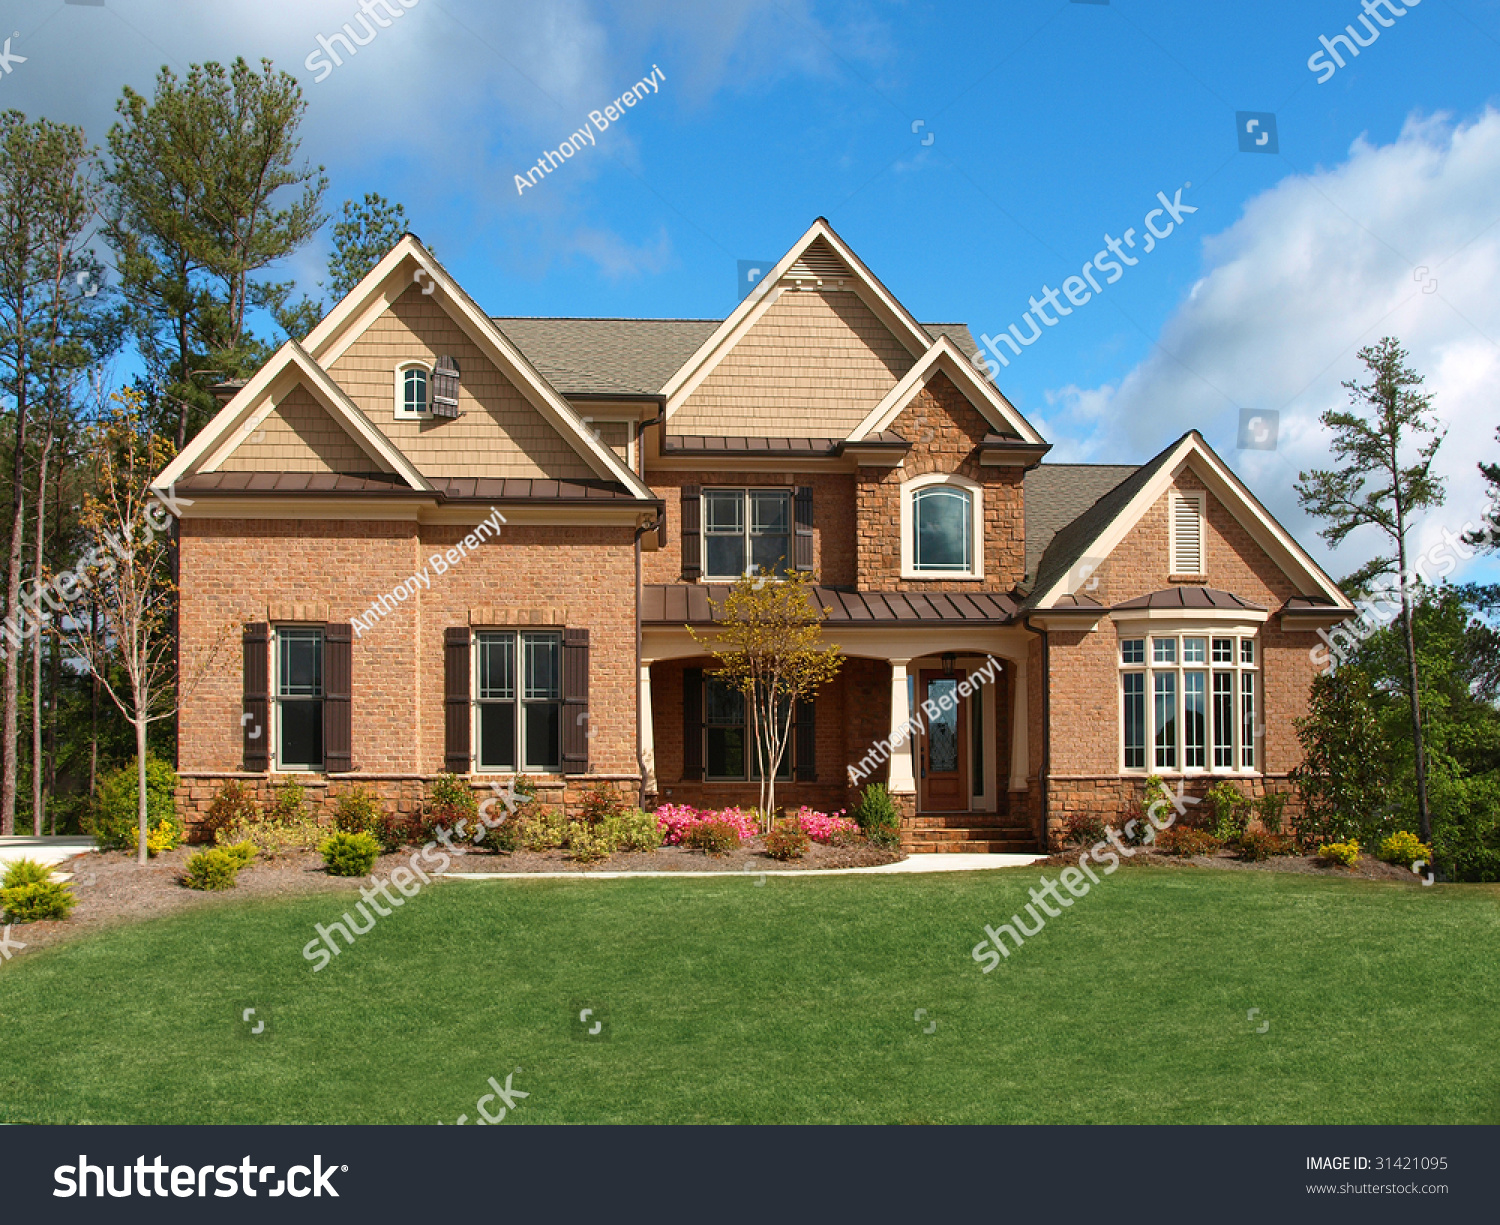 Luxury model home exterior with yard front view stock for Luxury home models